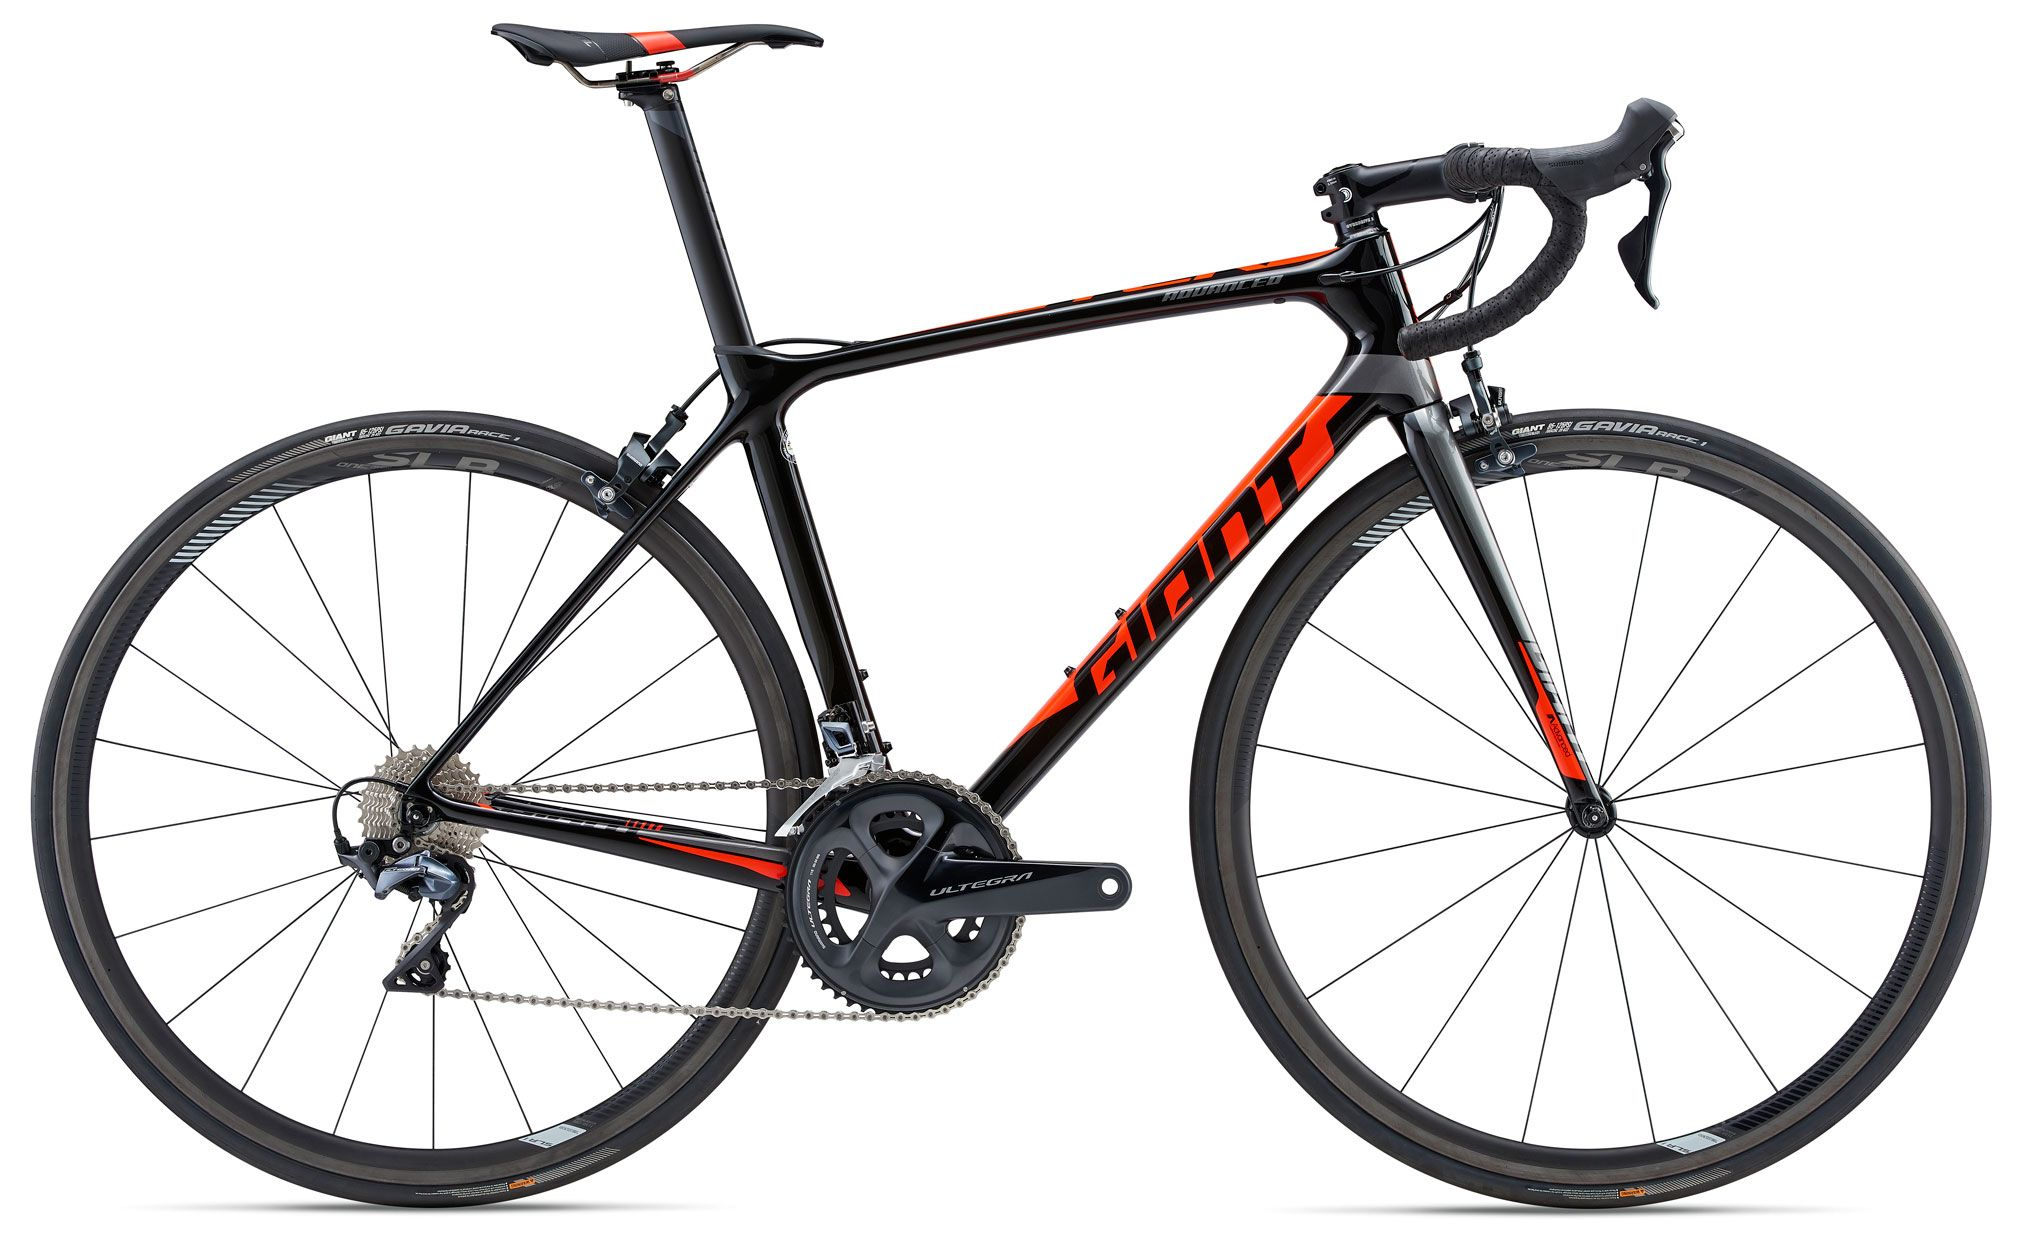 Велосипед Giant TCR Advanced Pro 1 2018 велосипед giant trinity advanced pro 1 2016